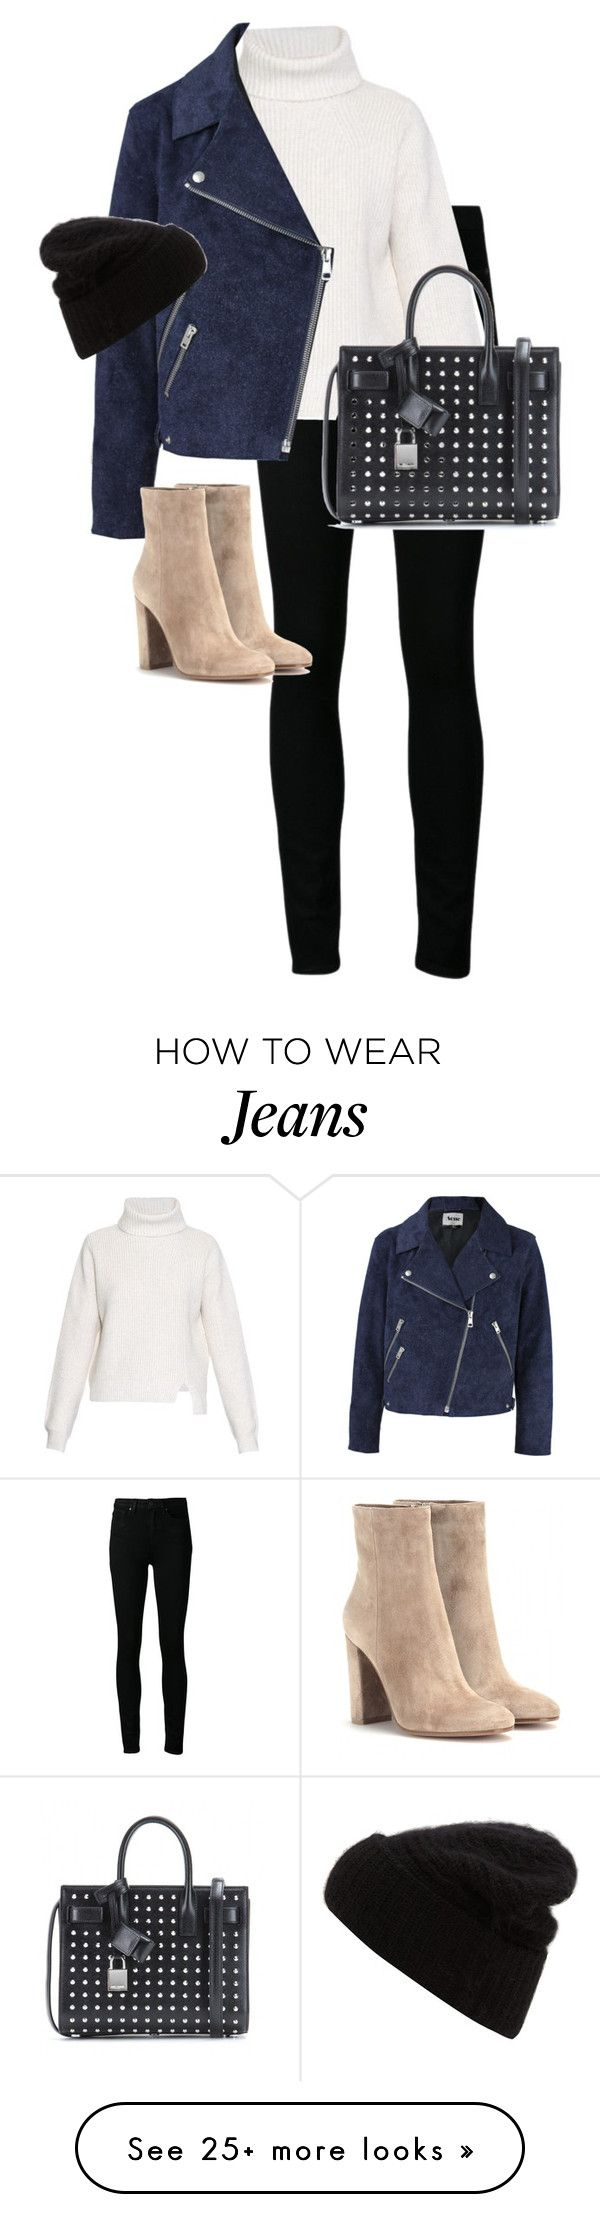 """Untitled #10294"" by alexsrogers on Polyvore featuring Paige Denim, Proenza Schouler, Acne Studios, Gianvito Rossi and Yves Saint Laurent"